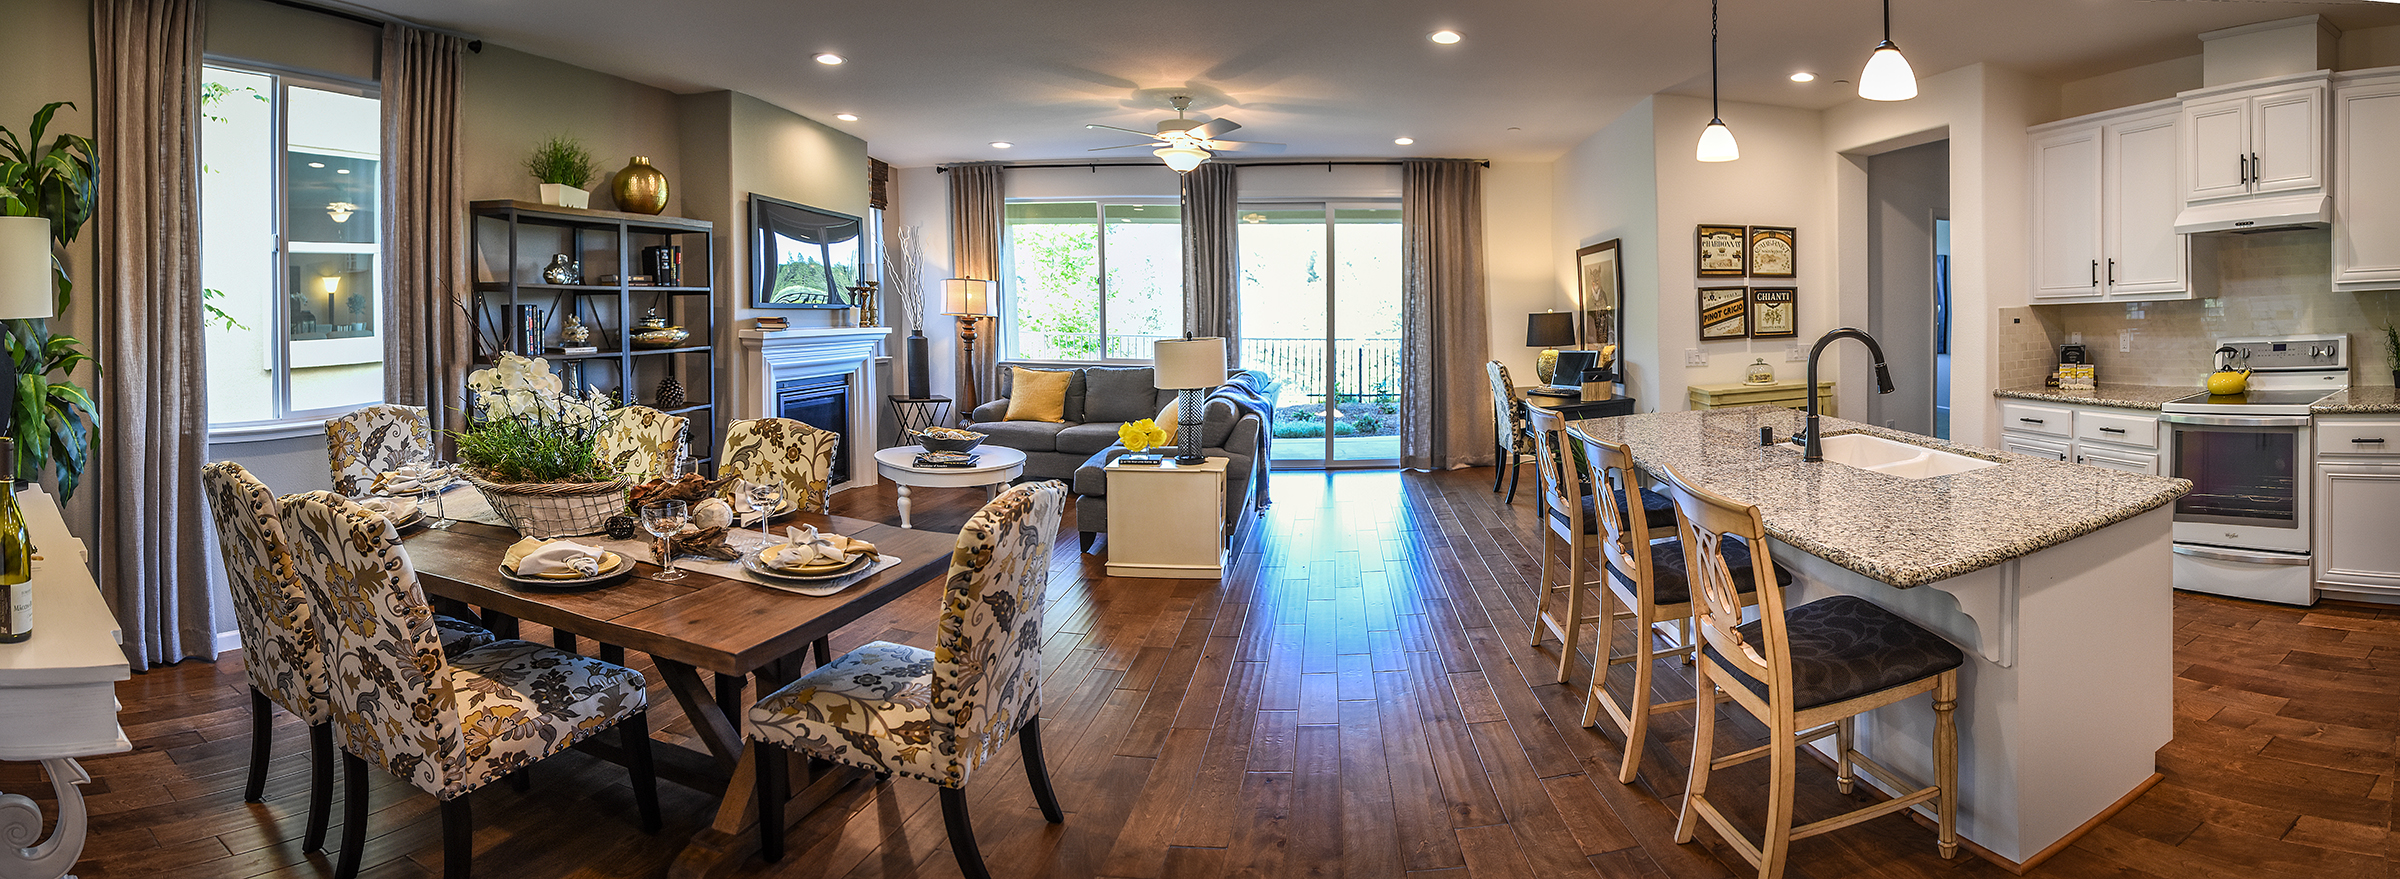 New Homes Easy Living Features More For Seniors To Love